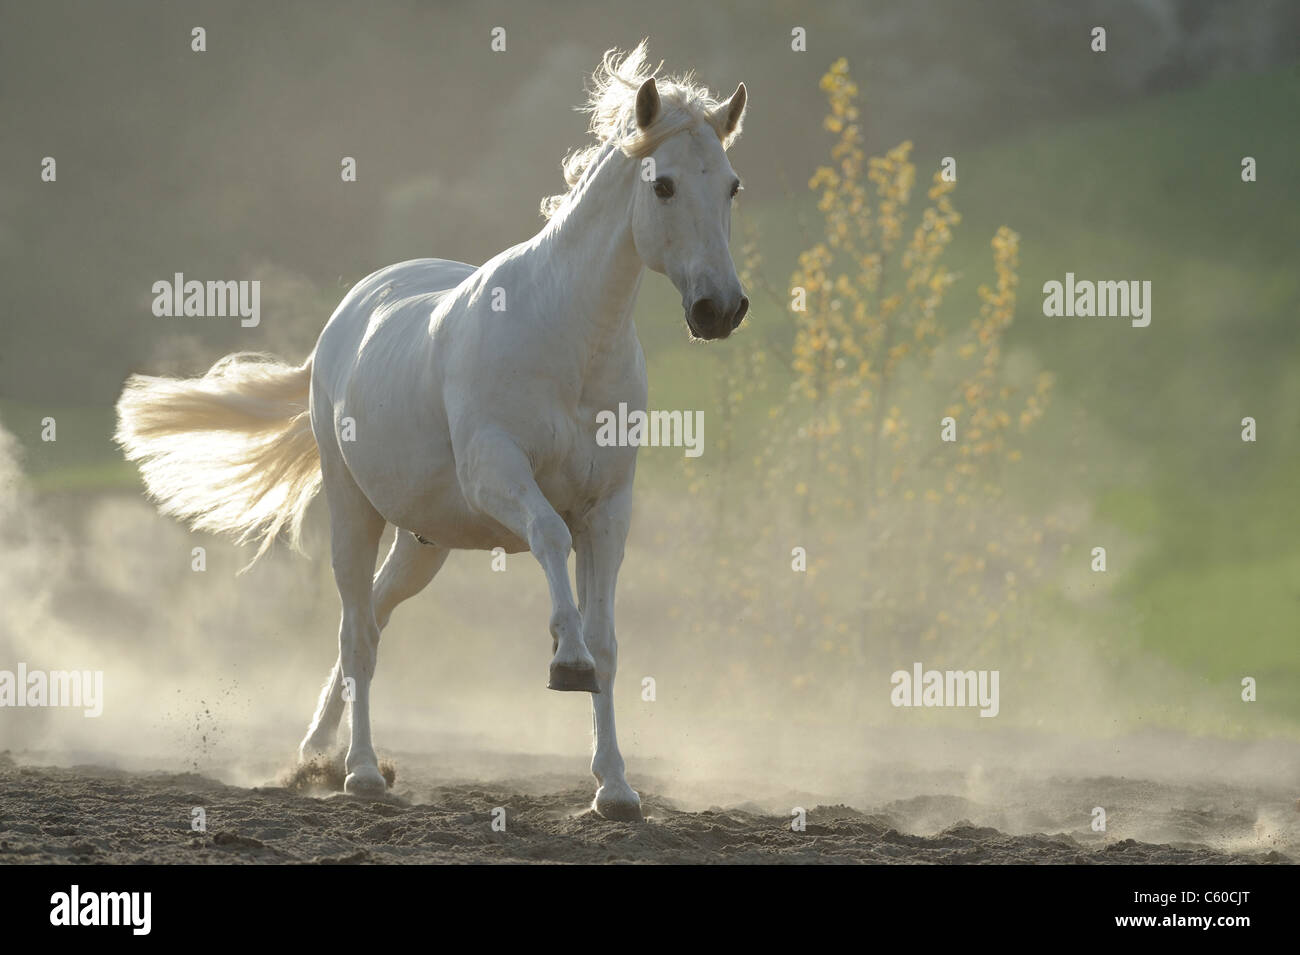 Andalusian Horse (Equus ferus caballus). Gray gelding in a gallop in a dusty paddock. - Stock Image